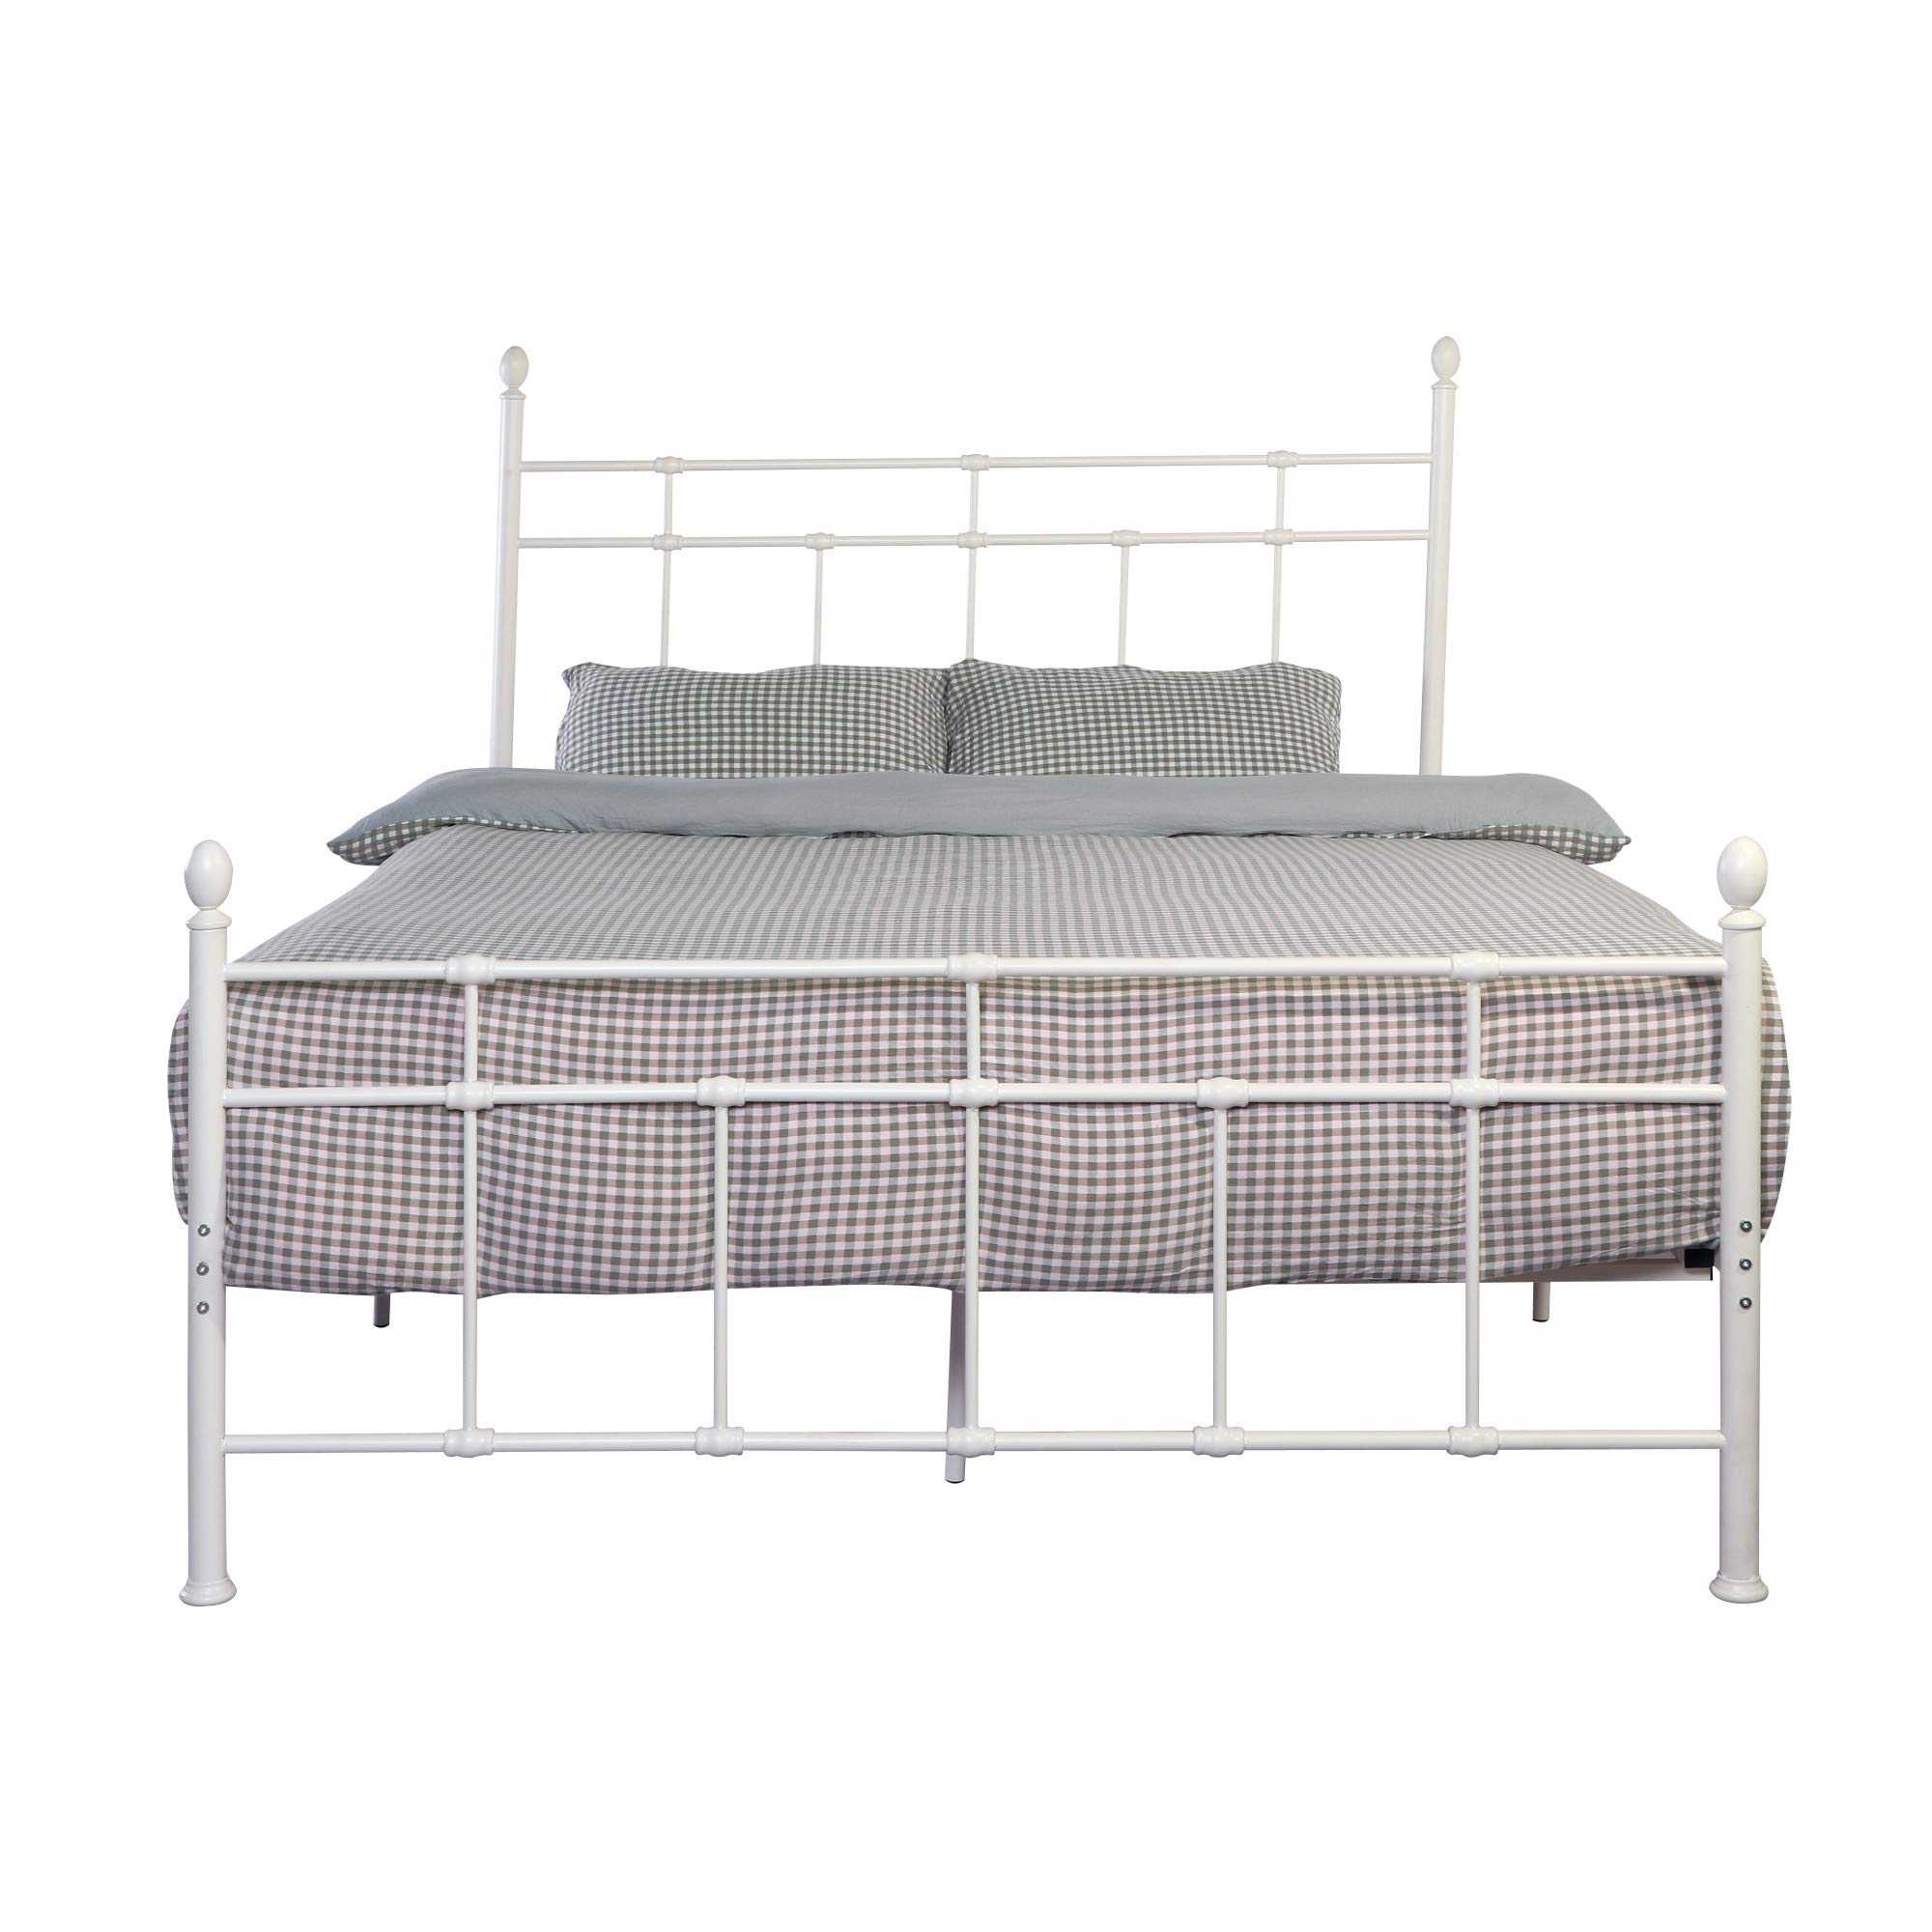 Kali Twin Metal Bed in Cloud White with Classic Pipe Frame, And Finials, by Artum Hill